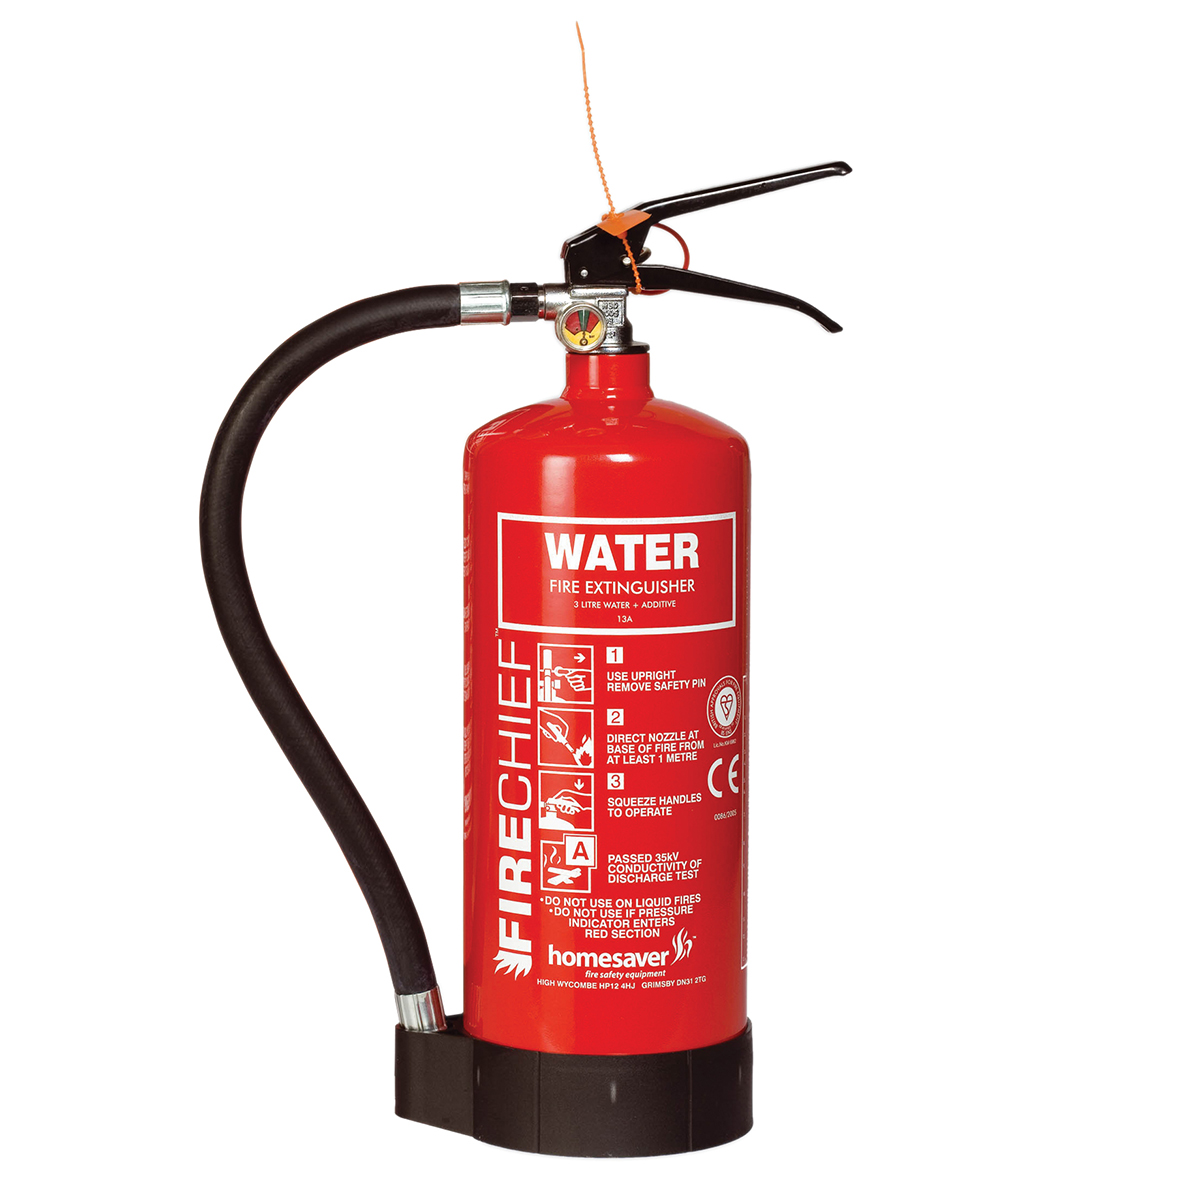 Water and Additive Fire Extinguisher